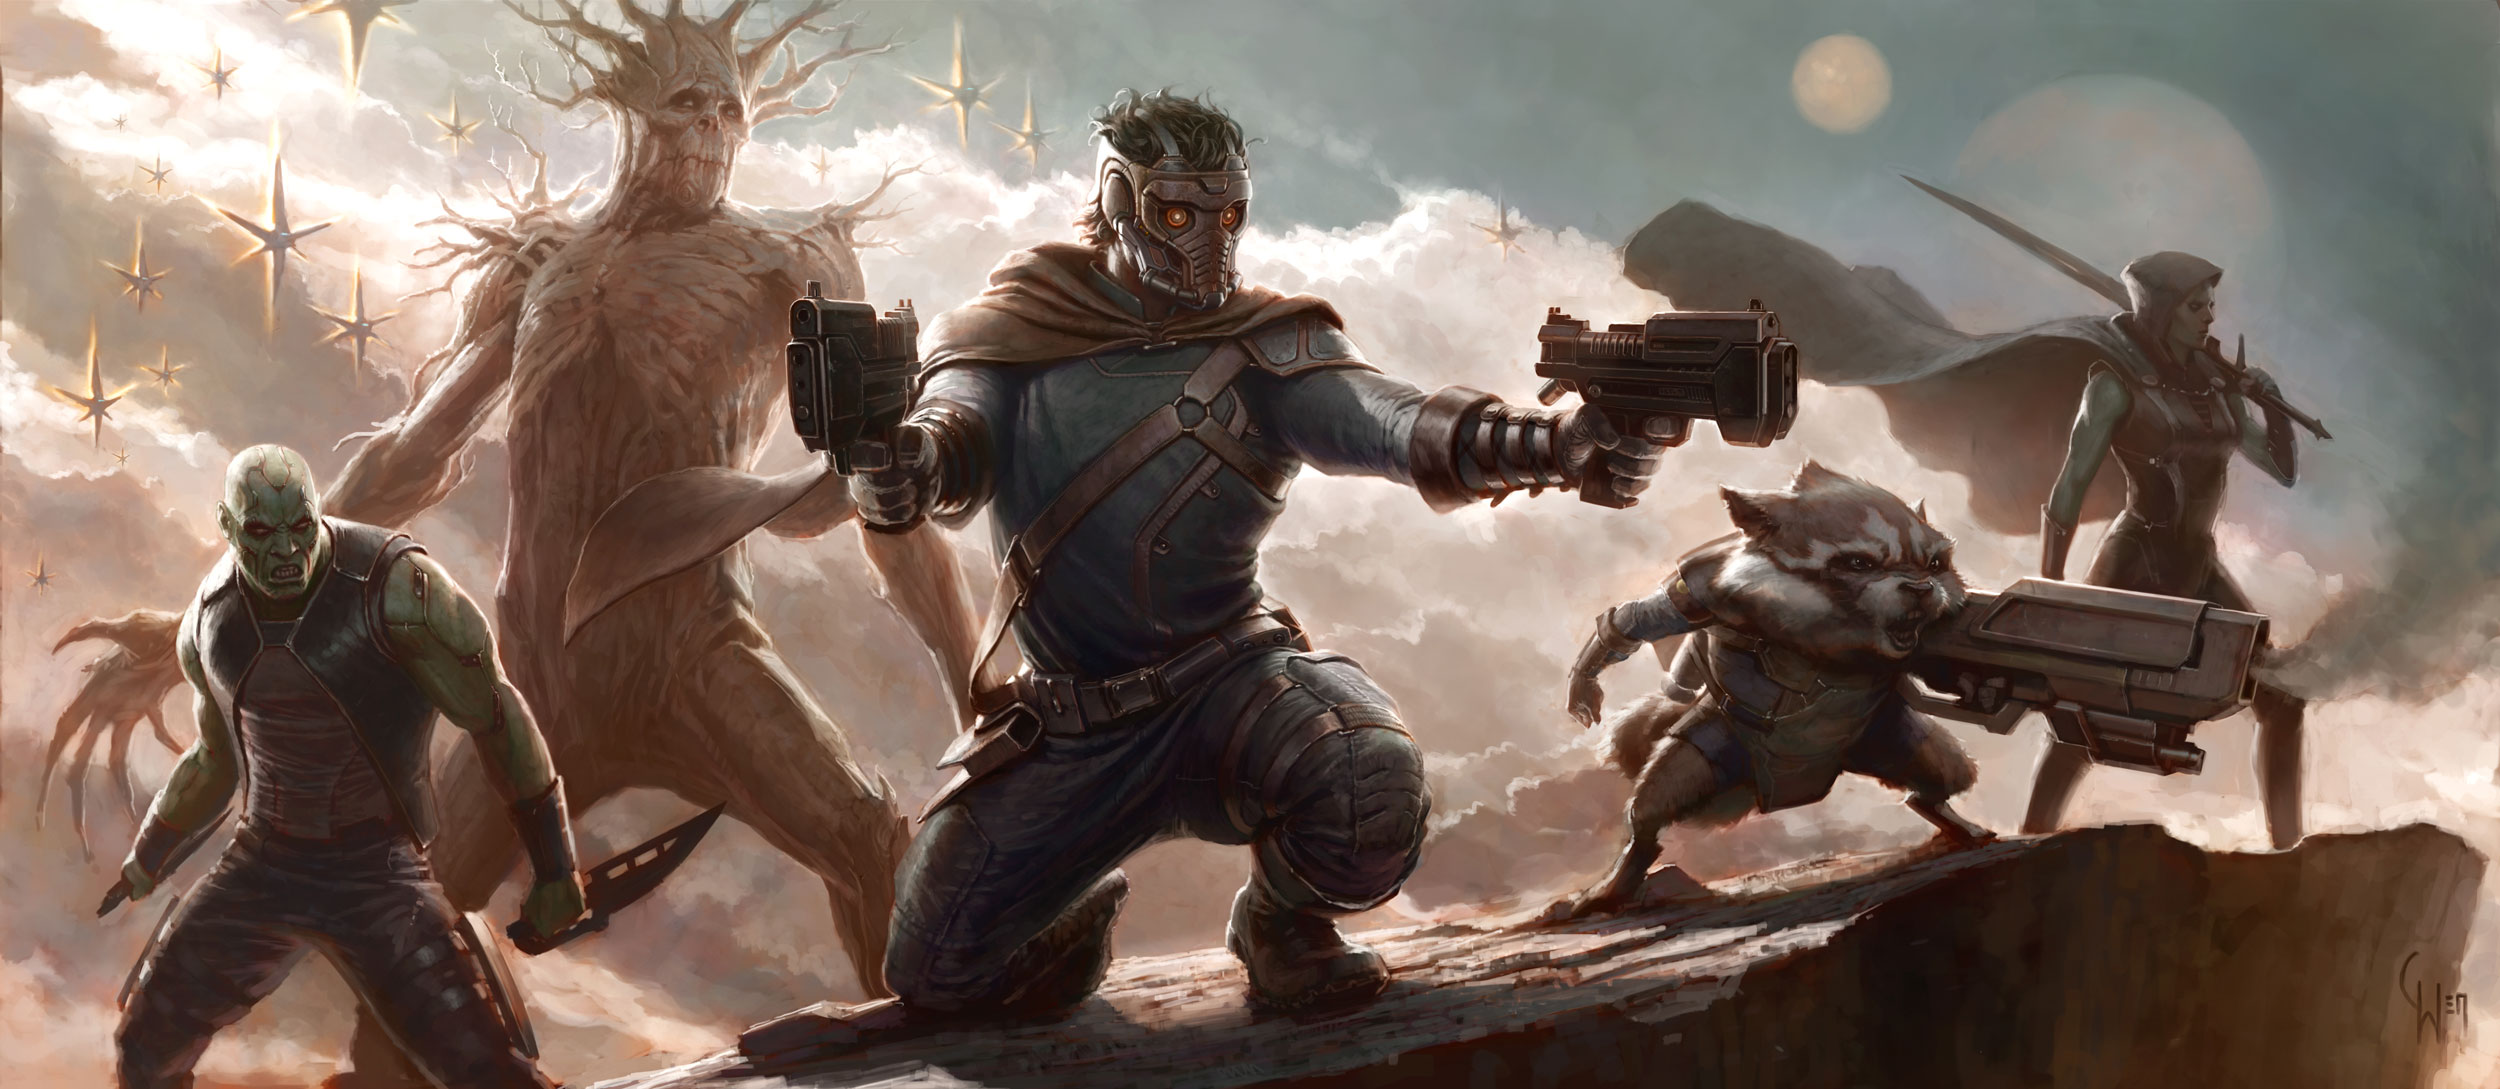 guardians-of-the-galaxy-photos-concept-art-full.jpg